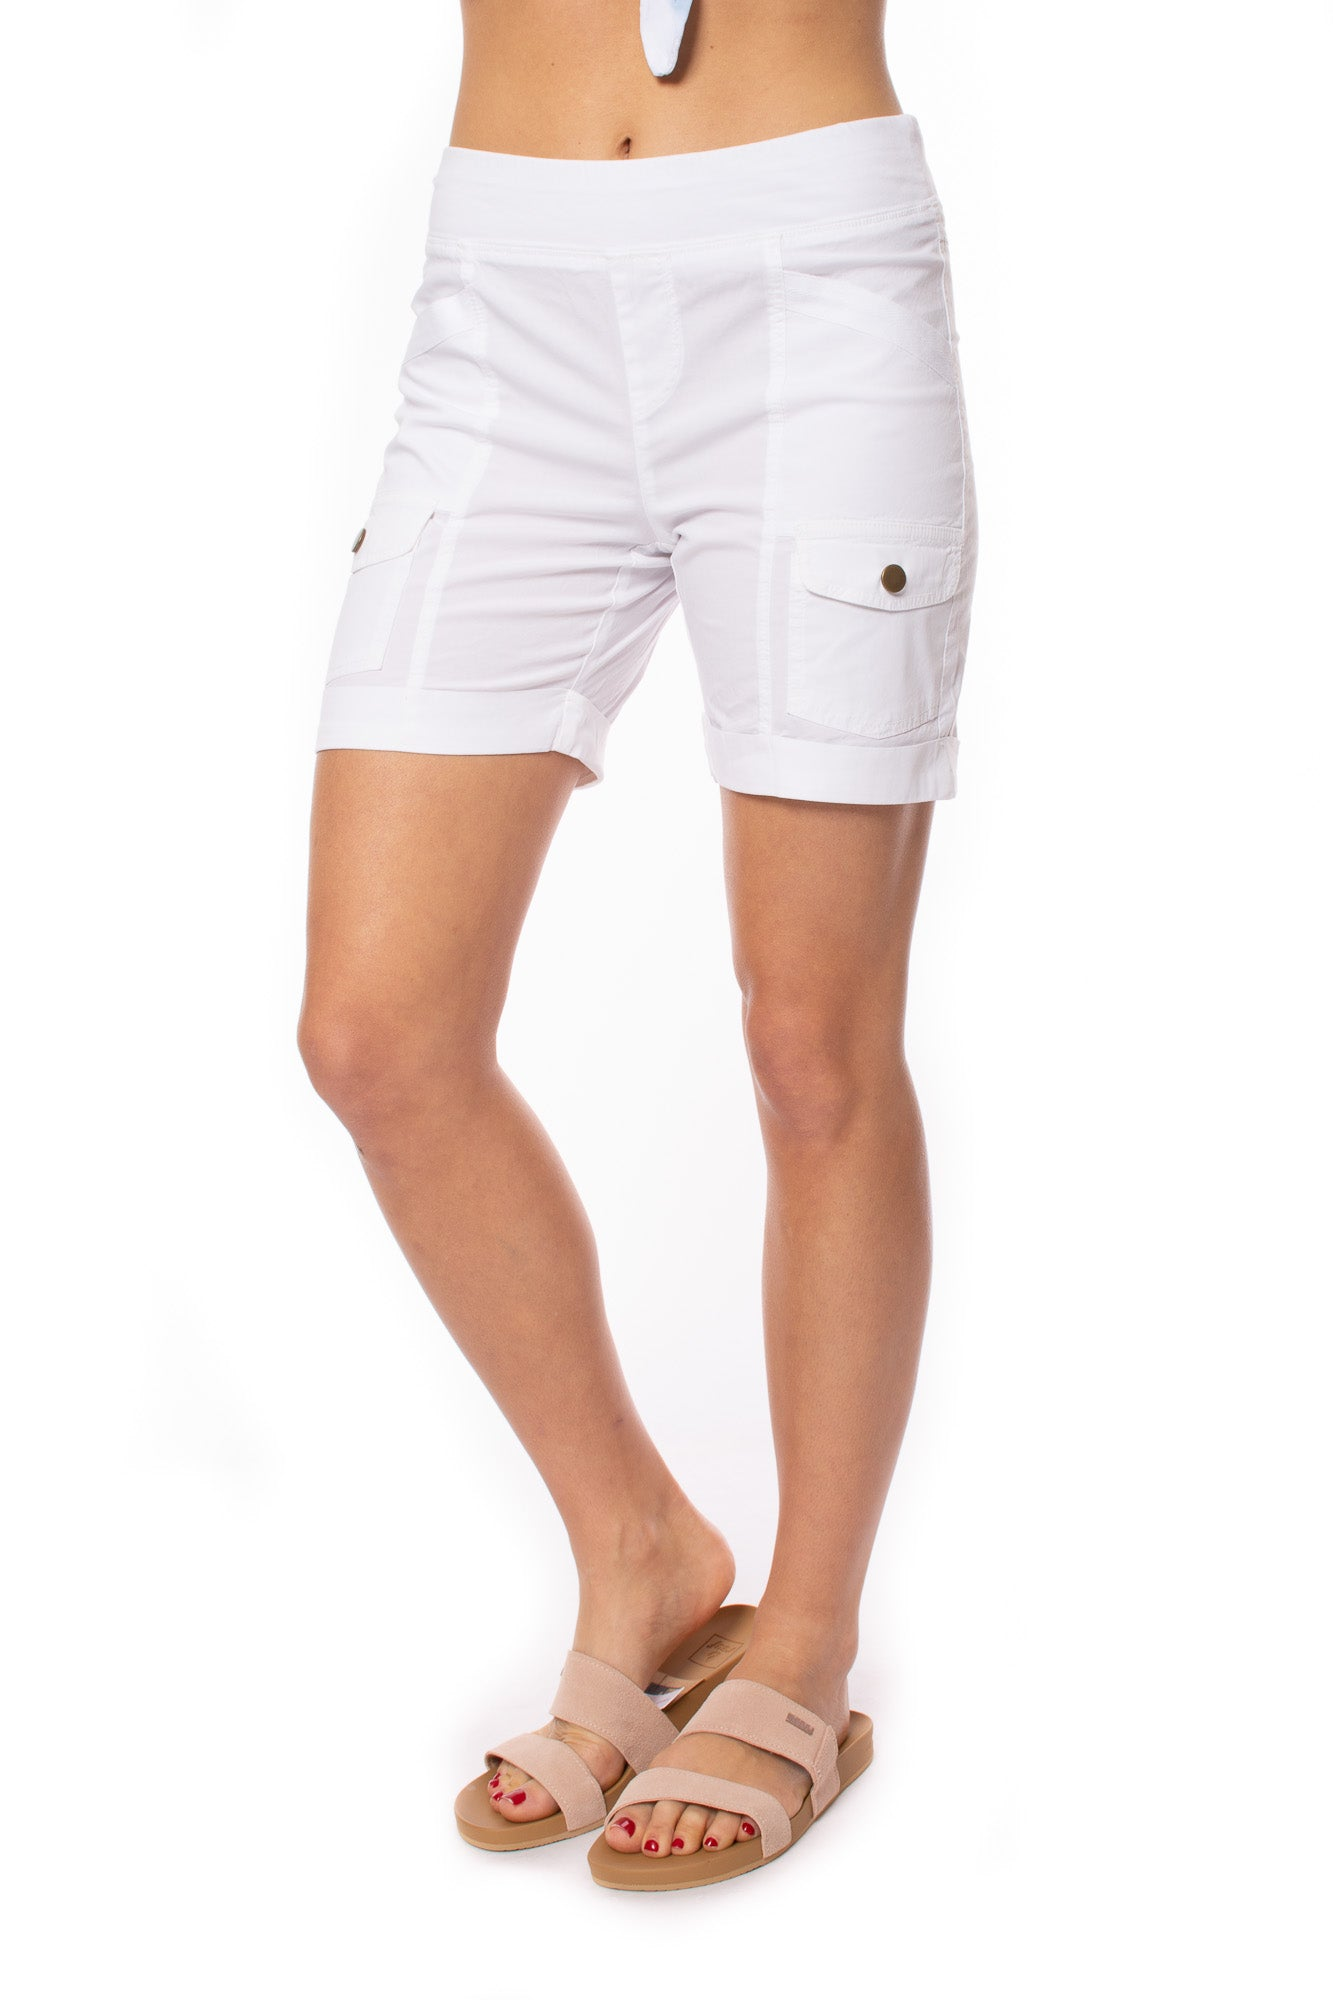 Wearables - Clarissa Short (21883W, White)